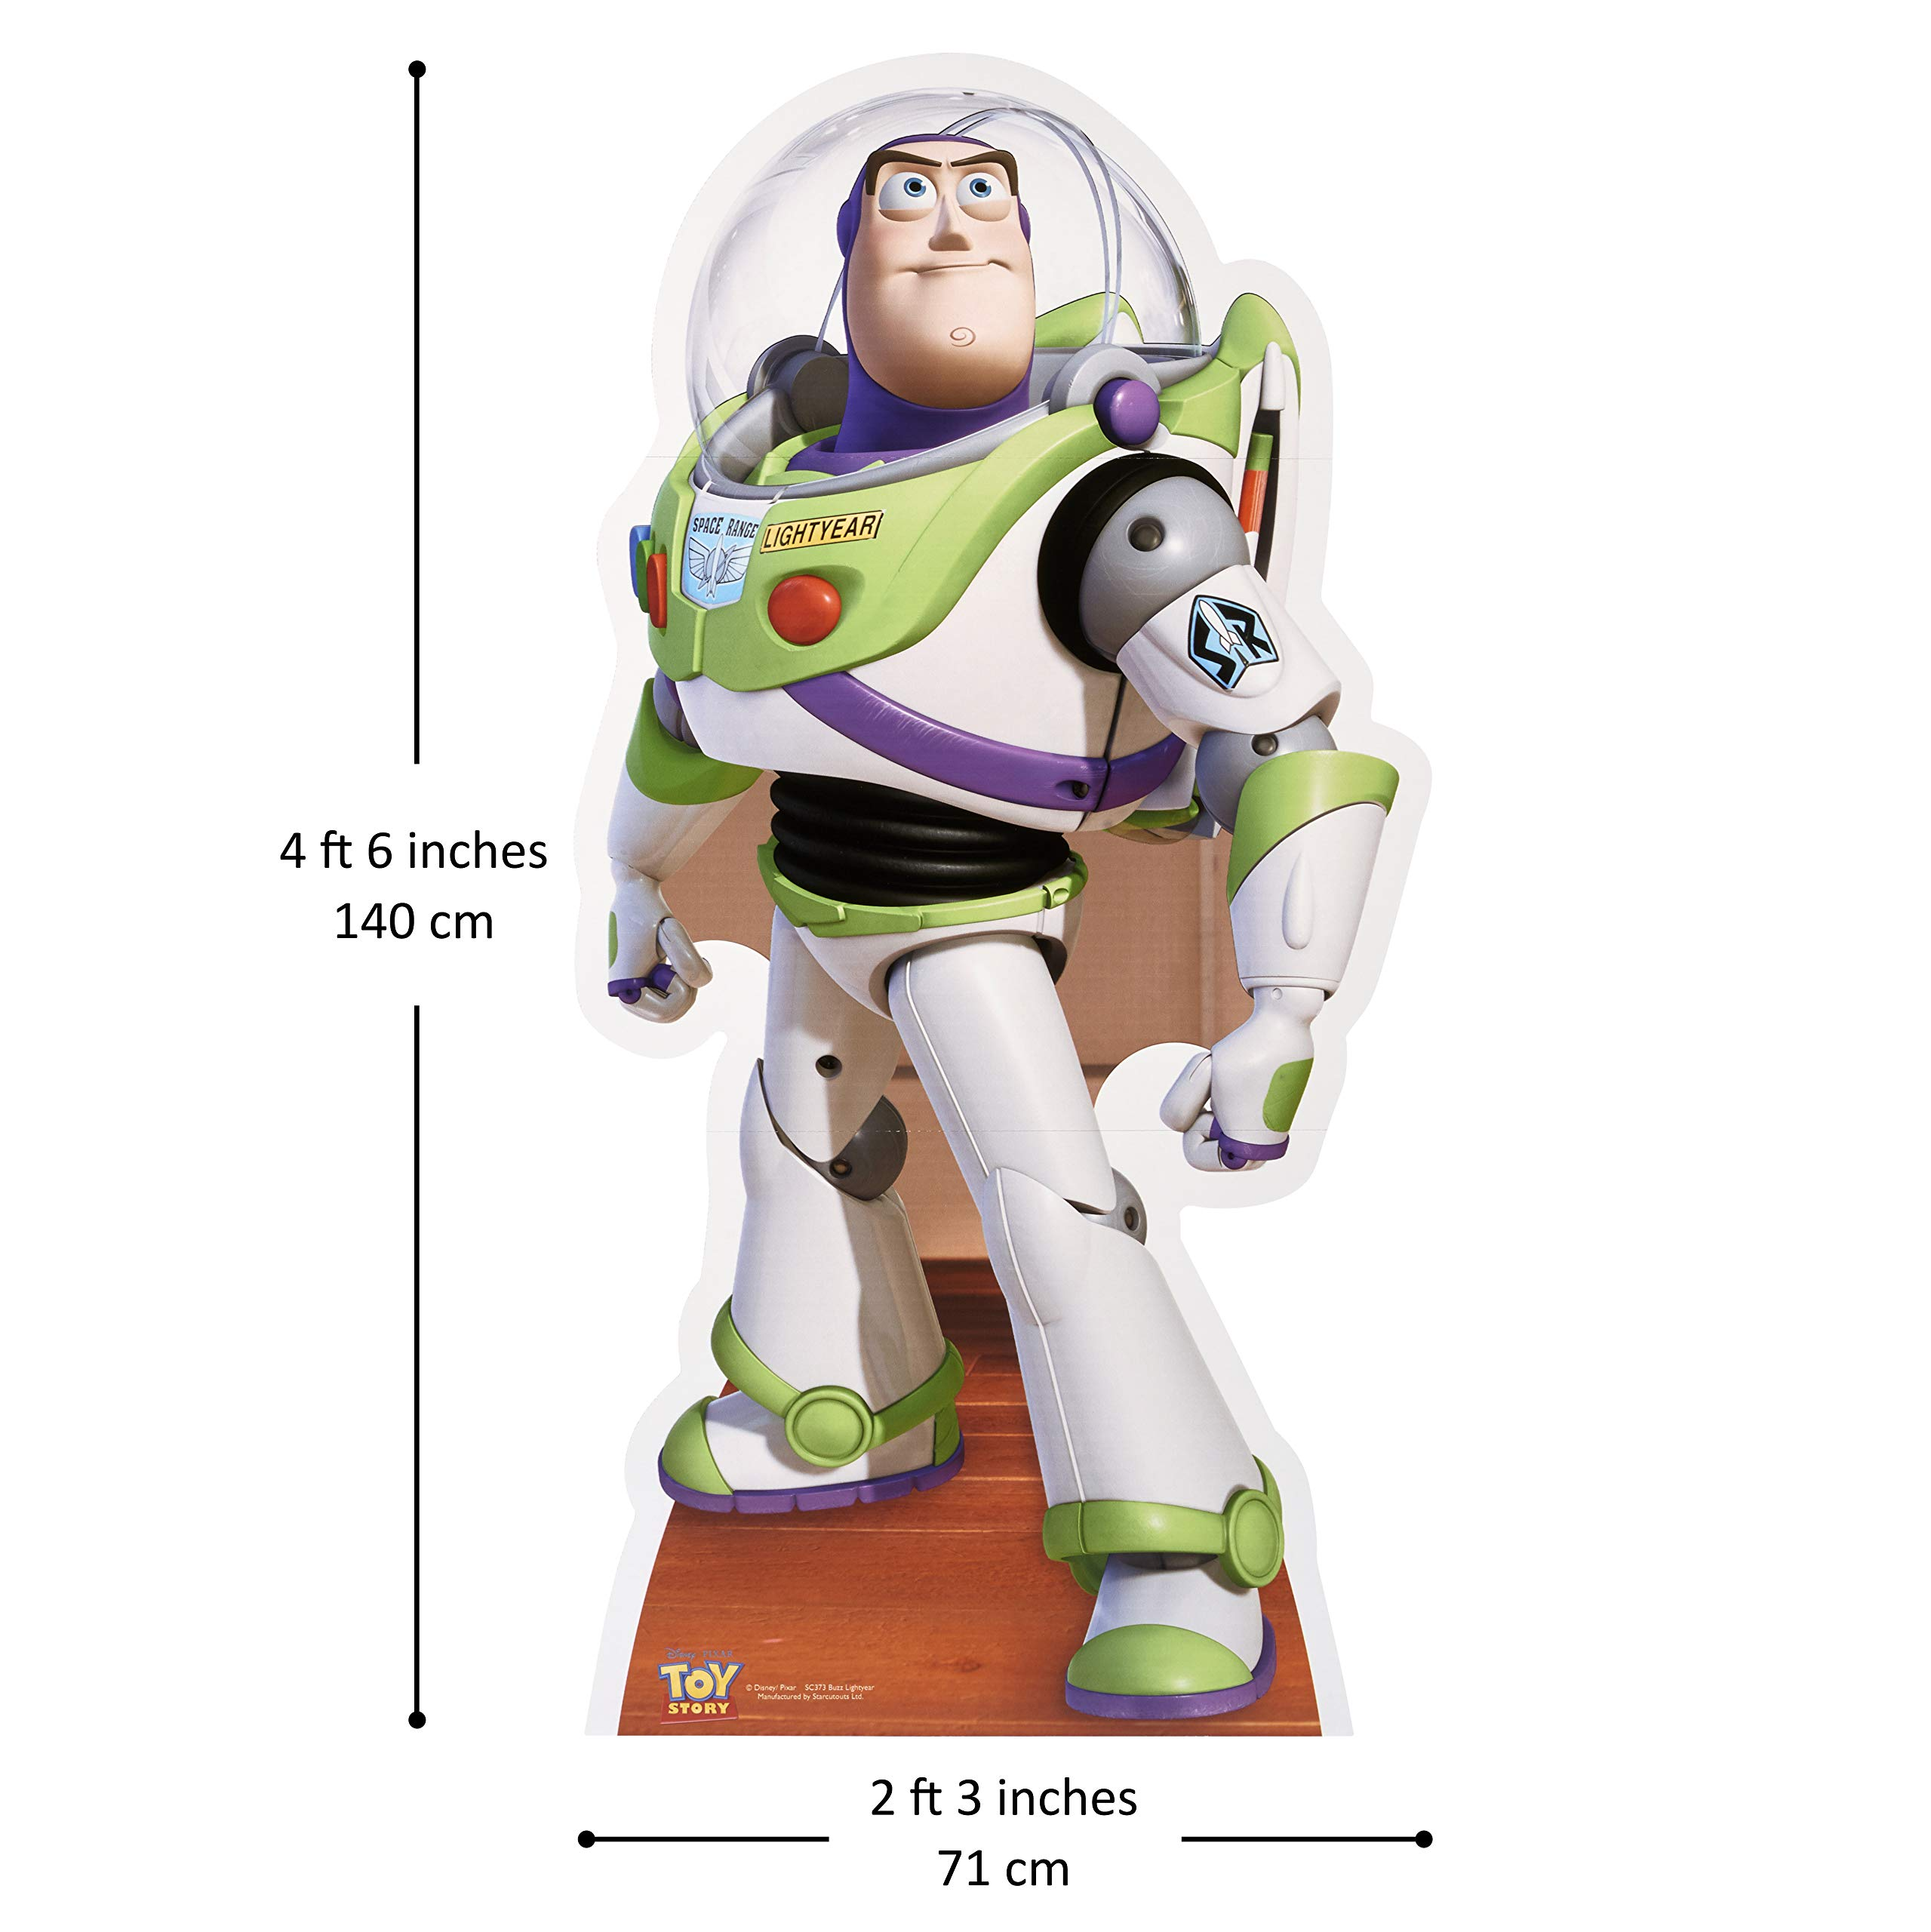 Star Cutouts SC373 Offical Disney Lifesize Cardboard Cut Out of Buzz Lightyear Toy Story Party and Gift 140cm Tall, Multicolour